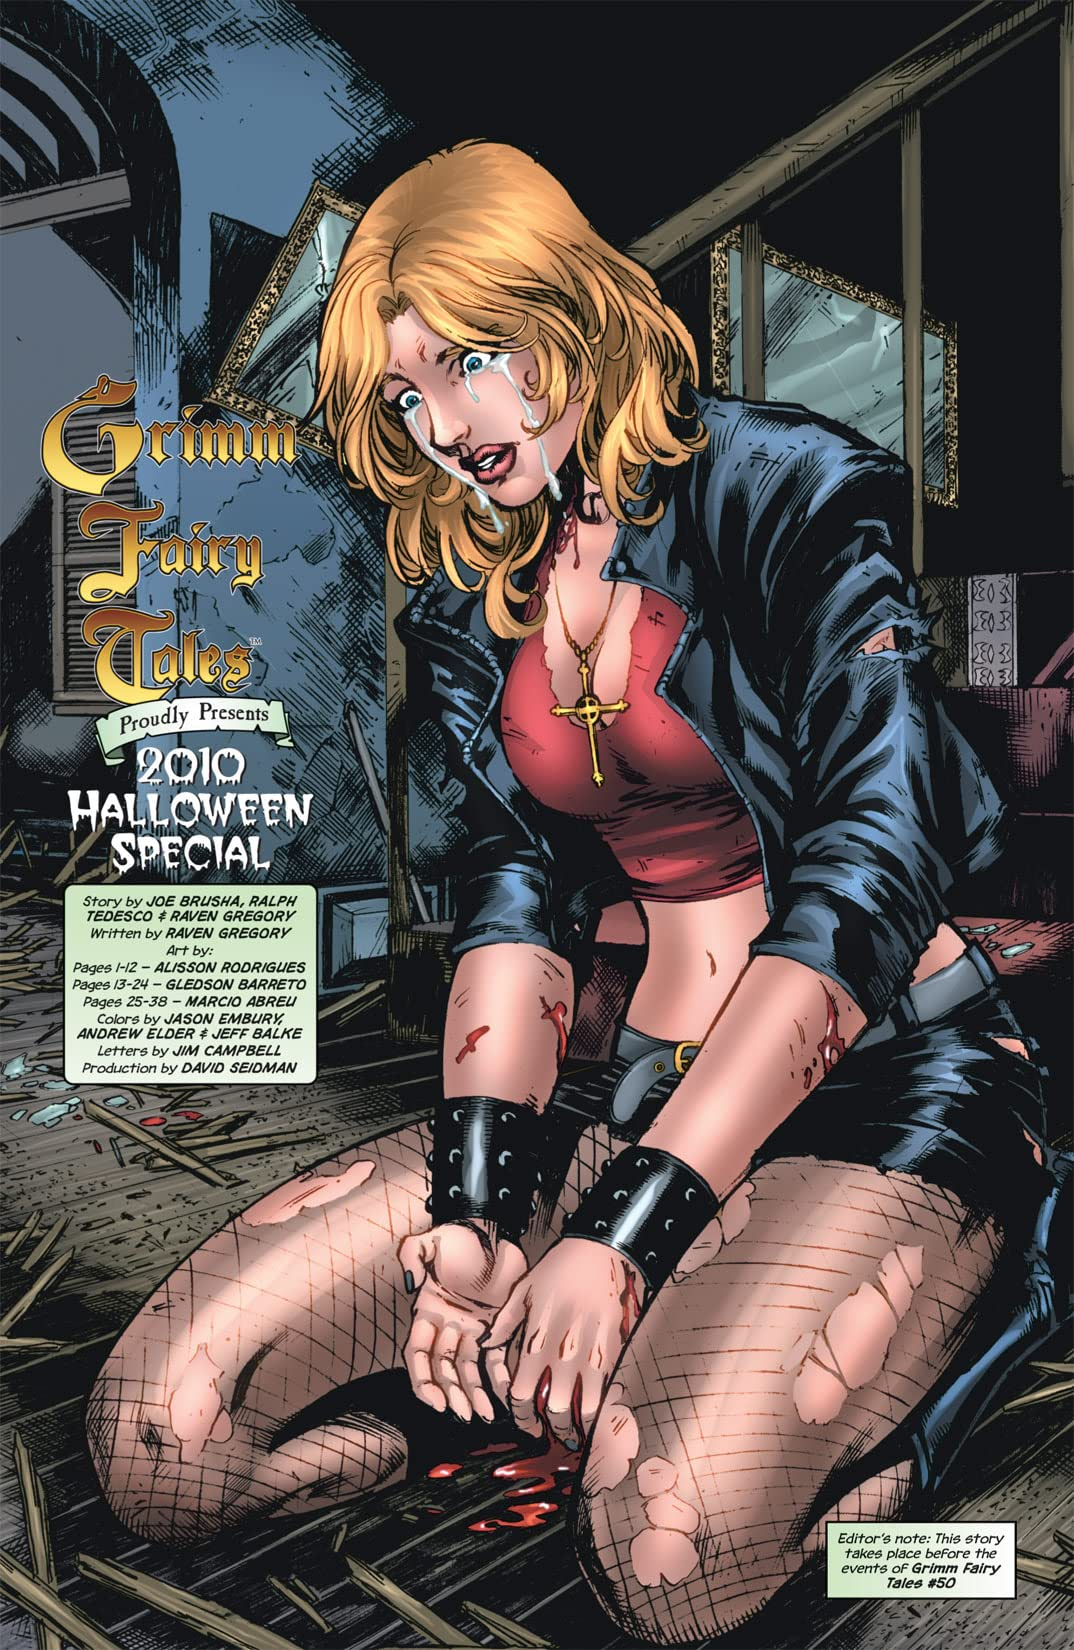 Grimm Fairy Tales #2: Halloween Special 2010